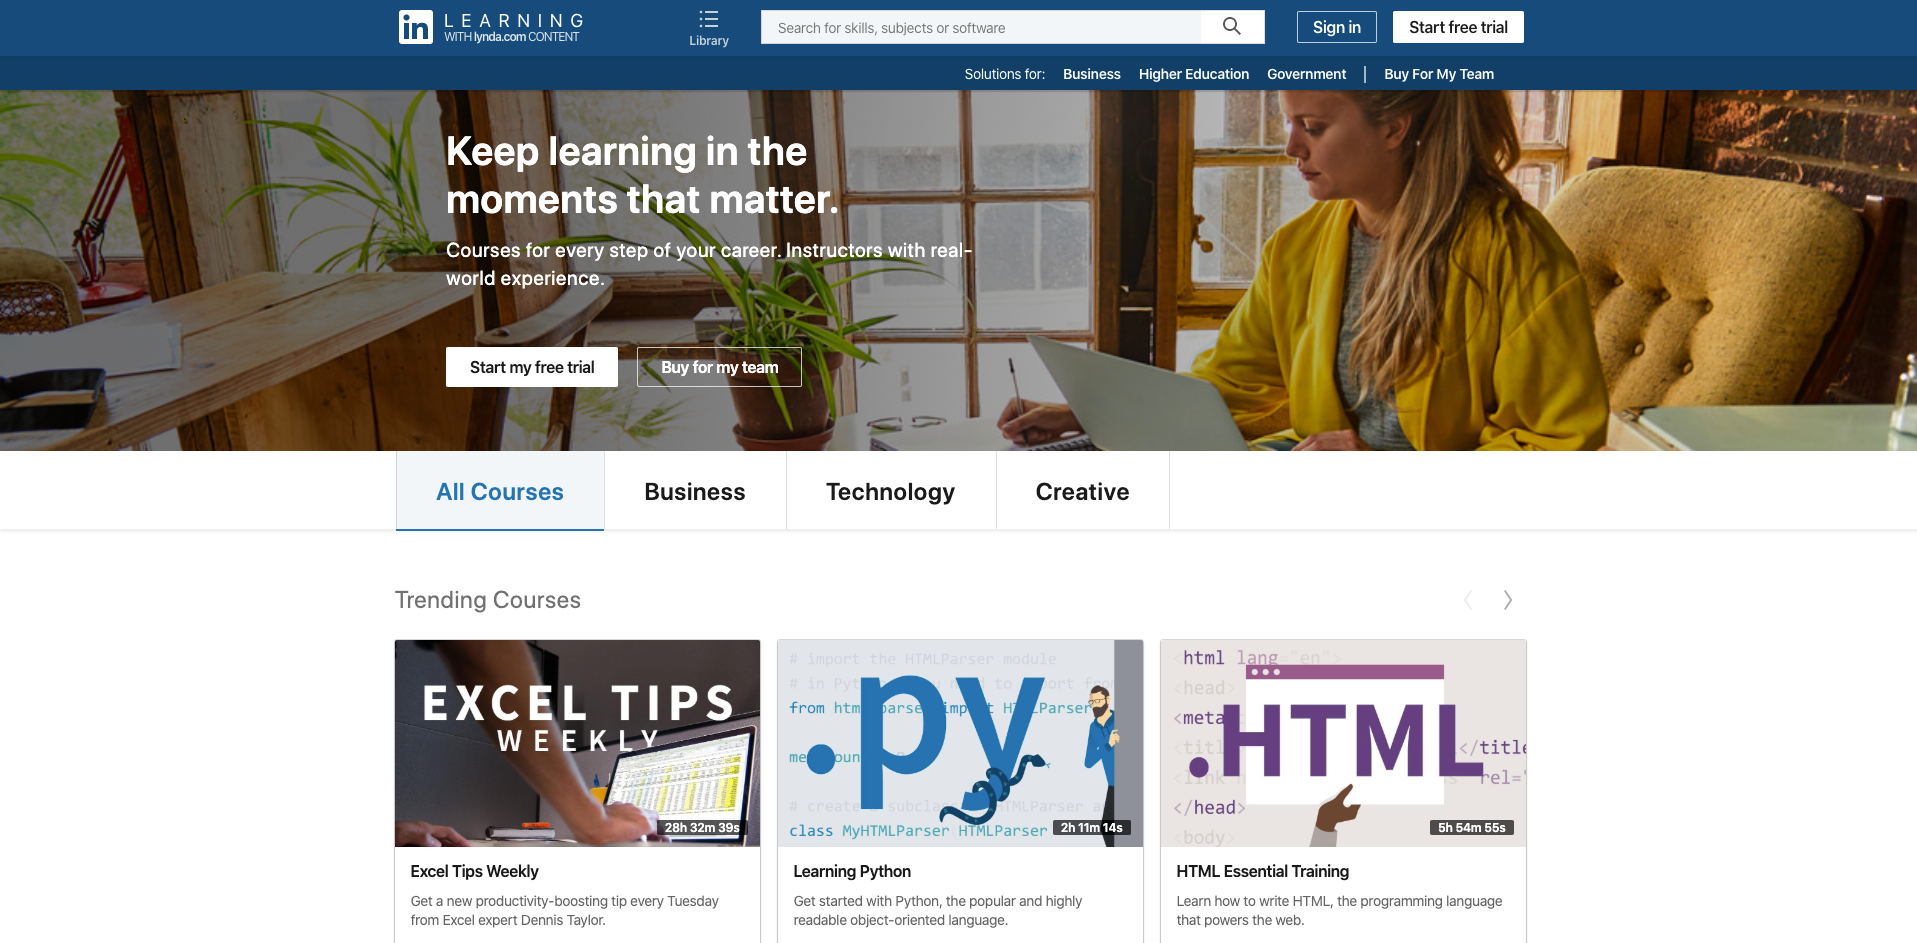 linkedIn learning website homepage screenshot